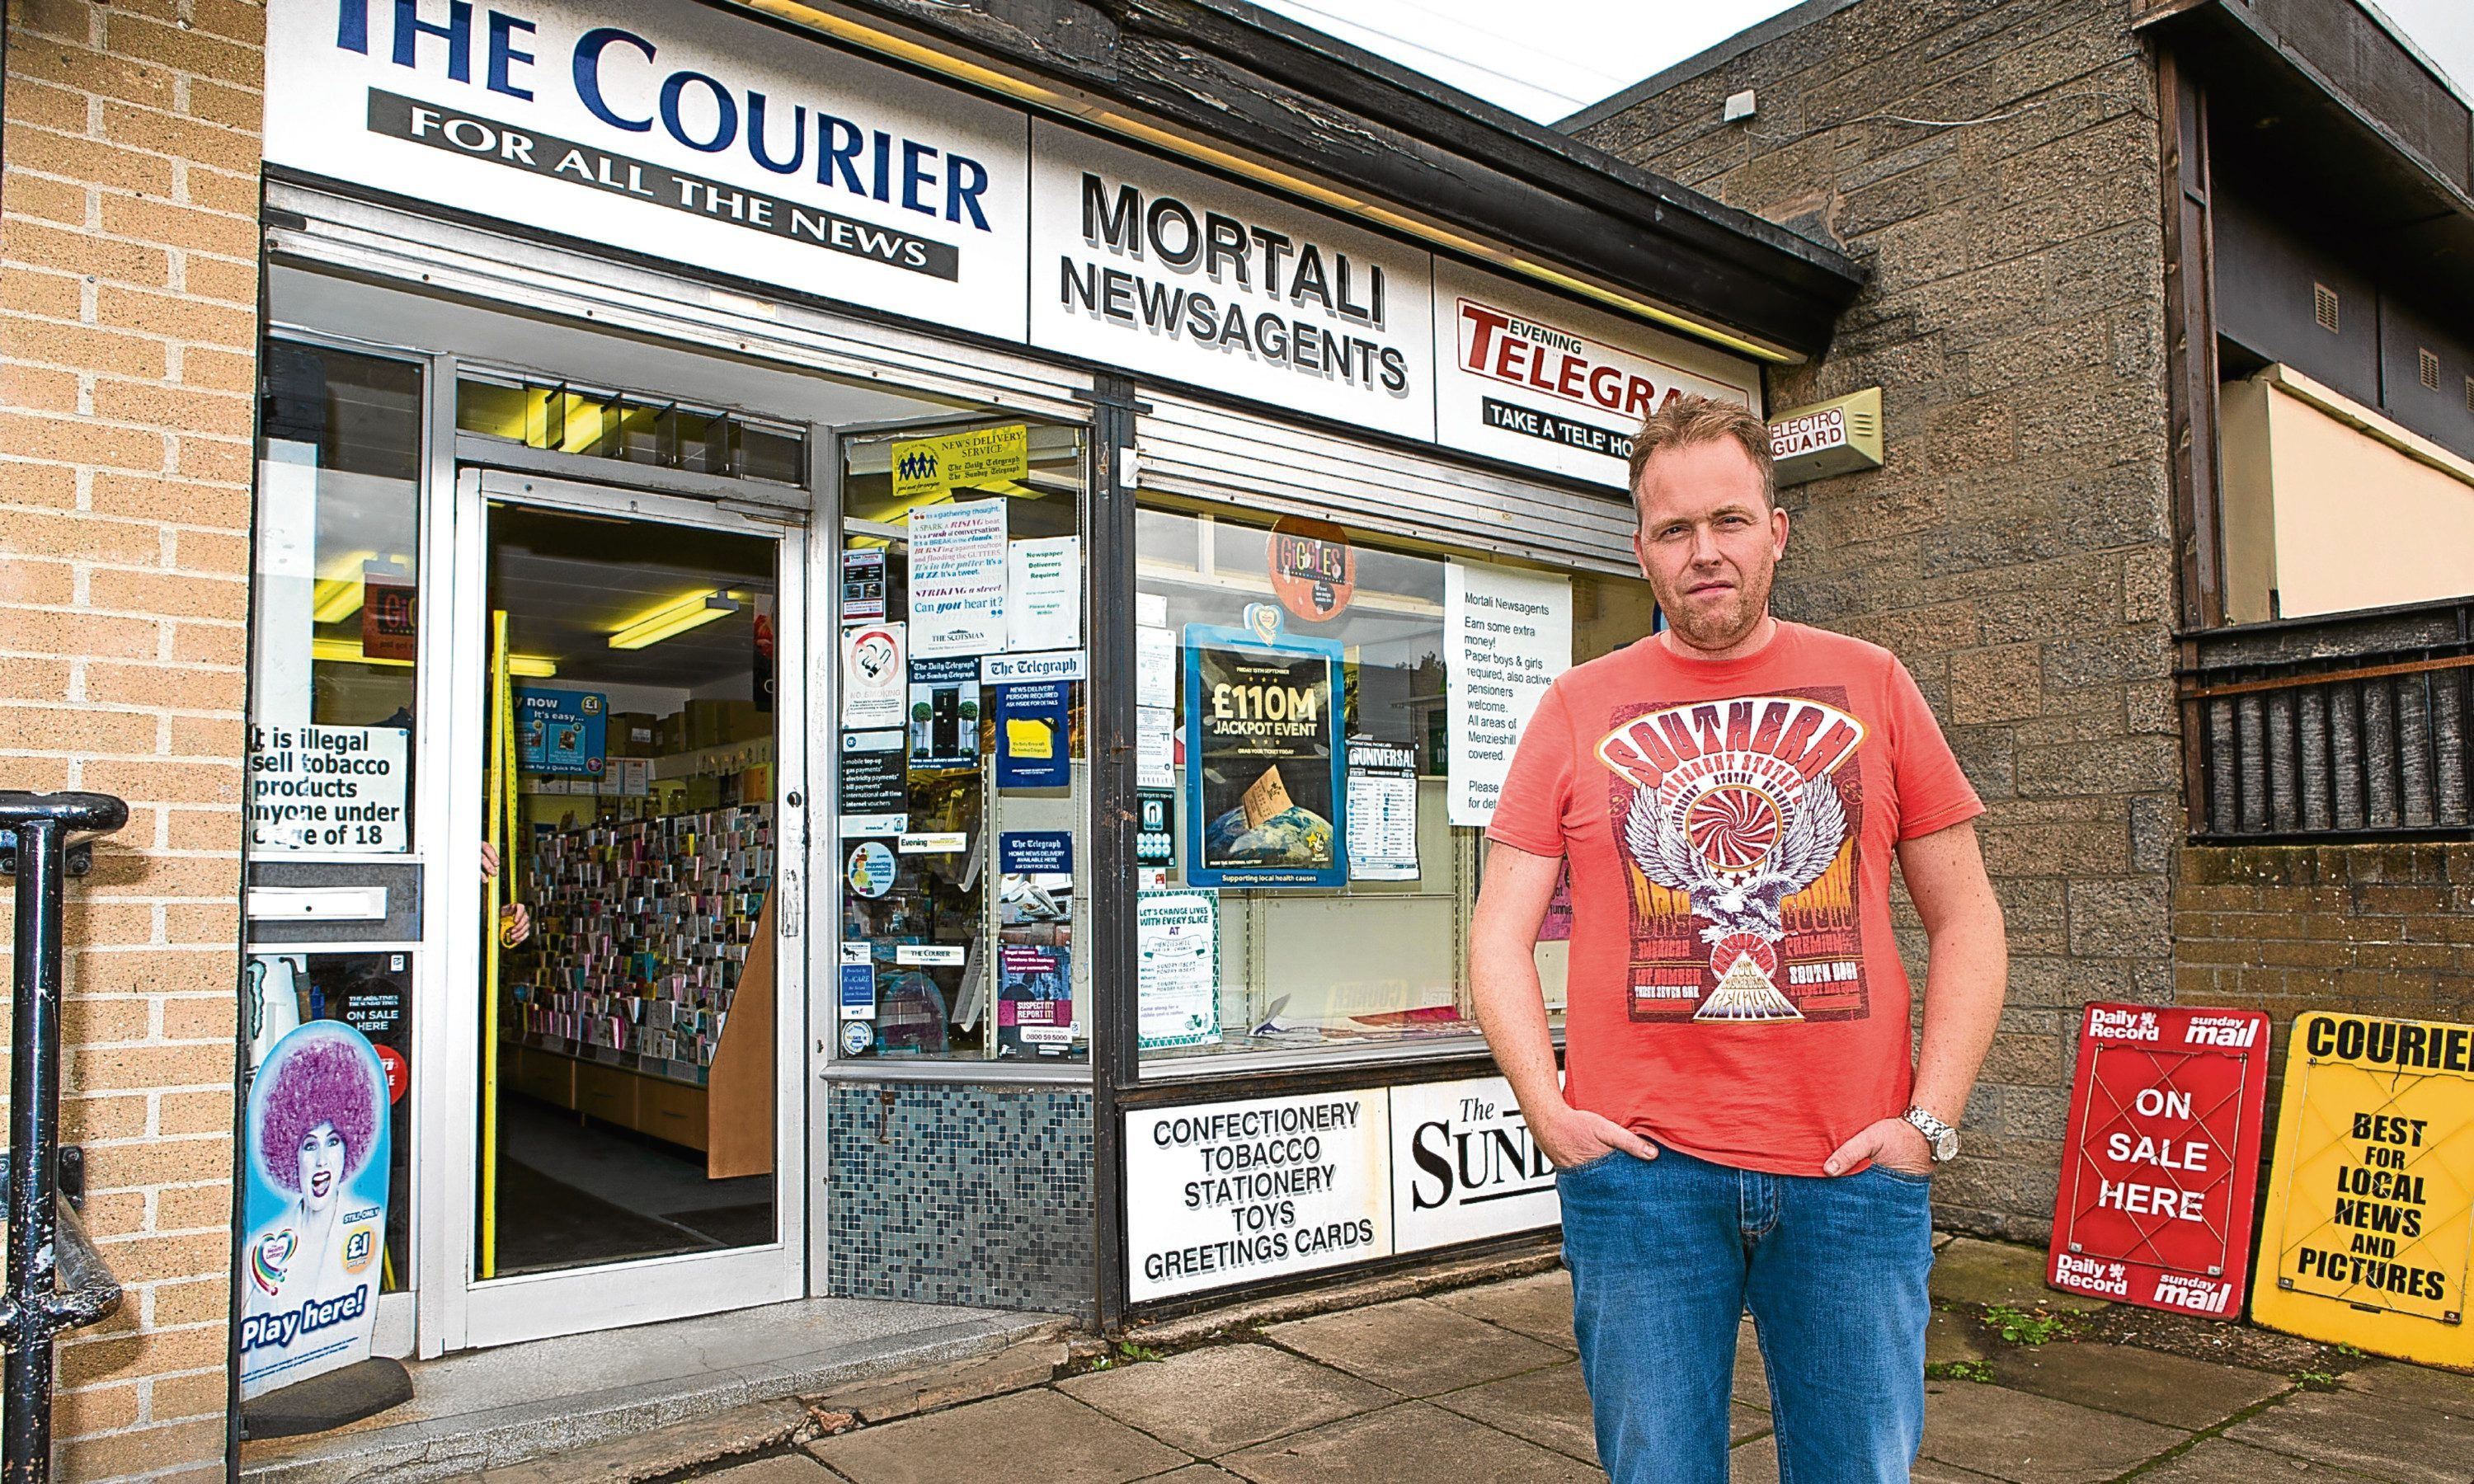 Shop owner Robbie Mortali (44) outside the newsagents